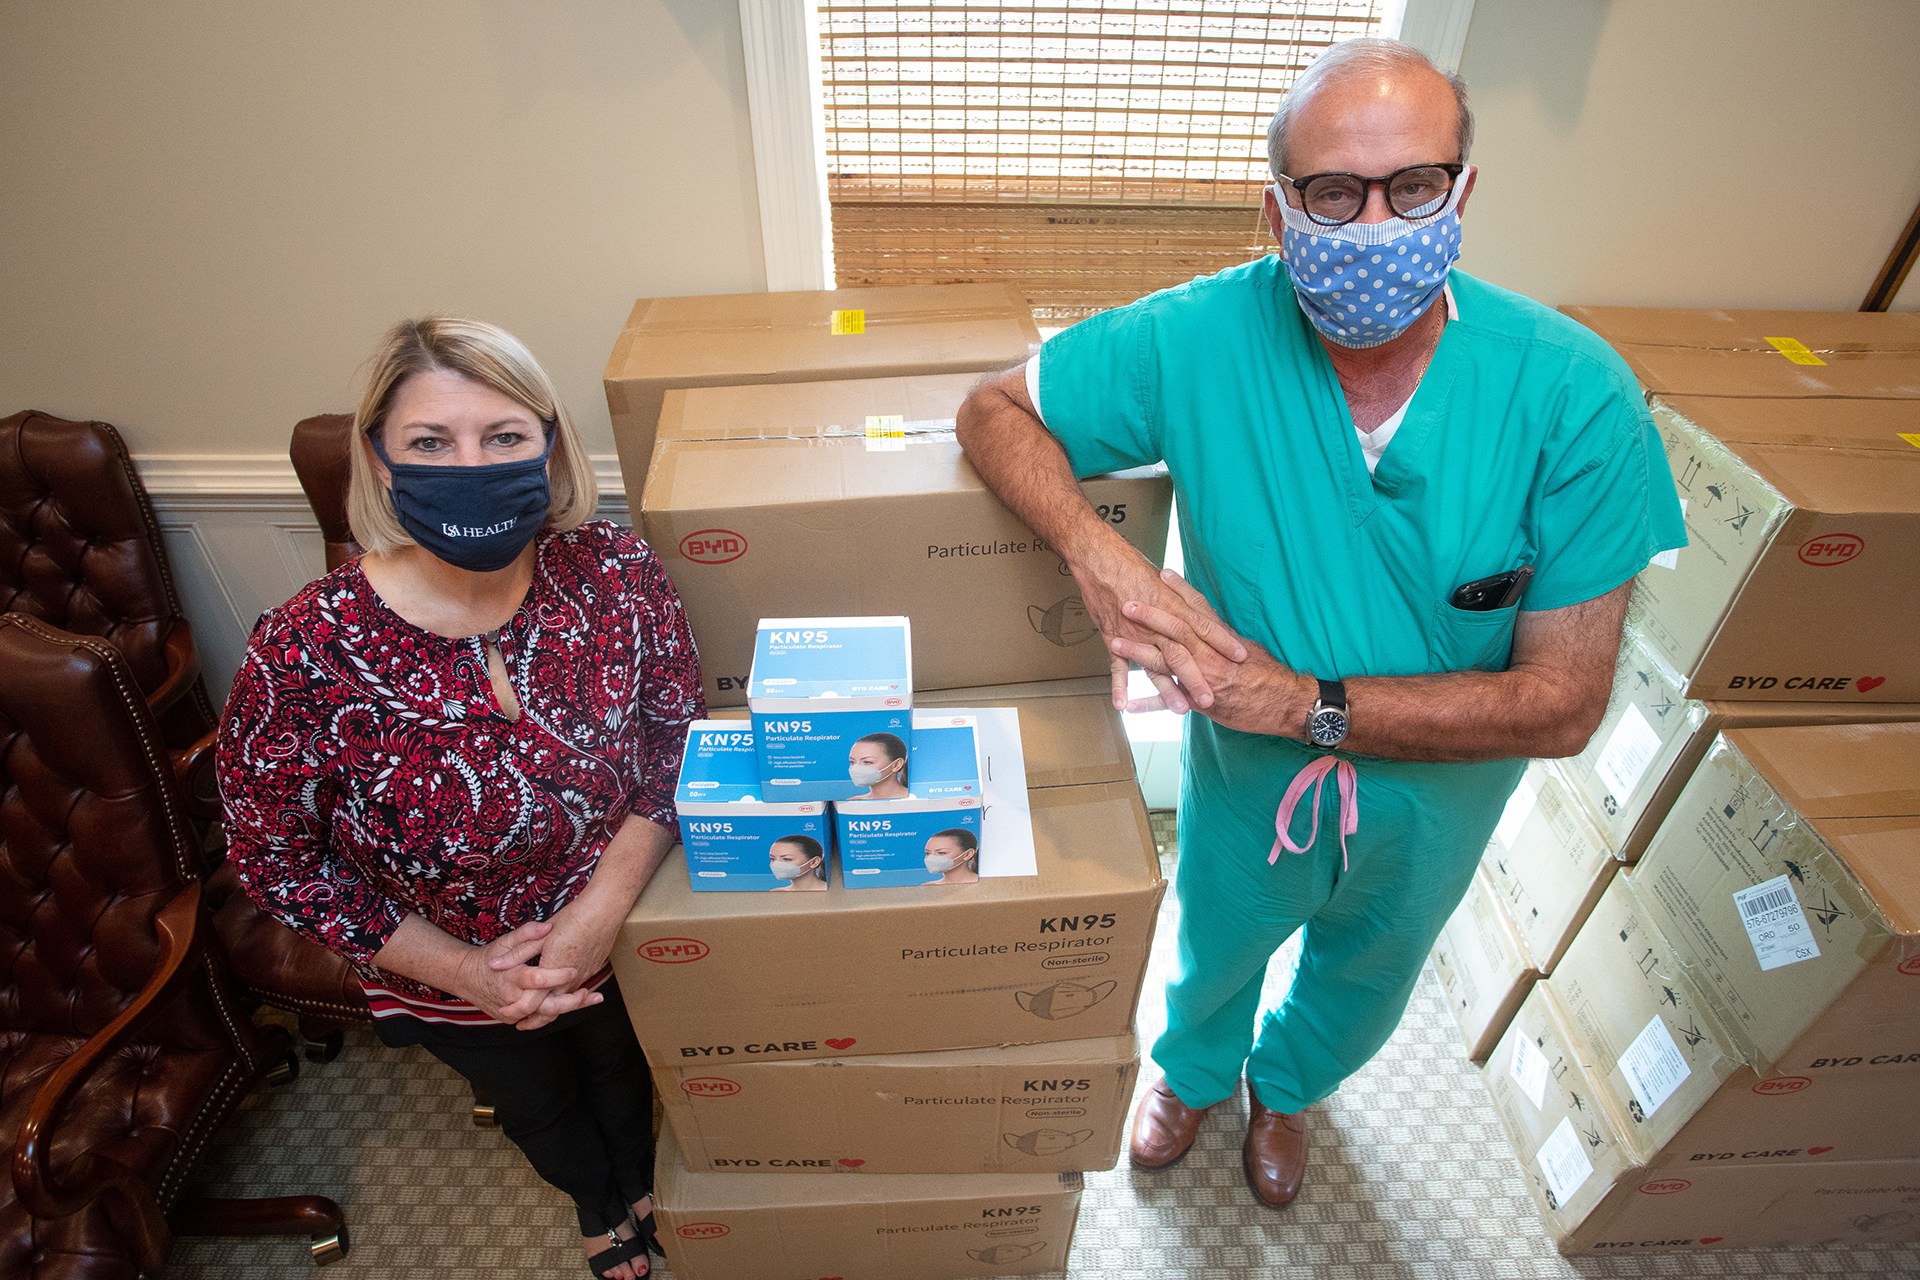 USA Health receives boxes of KN95 masks from the Medical Society of Mobile County, thanks to a donation from International Medical Corps. Pictured are Traci Jones, Senior Associate CFO and Assistant Vice President of Medical Affairs for USA Health, and Dr. George Koulianos, President of the Medical Society of Mobile County.